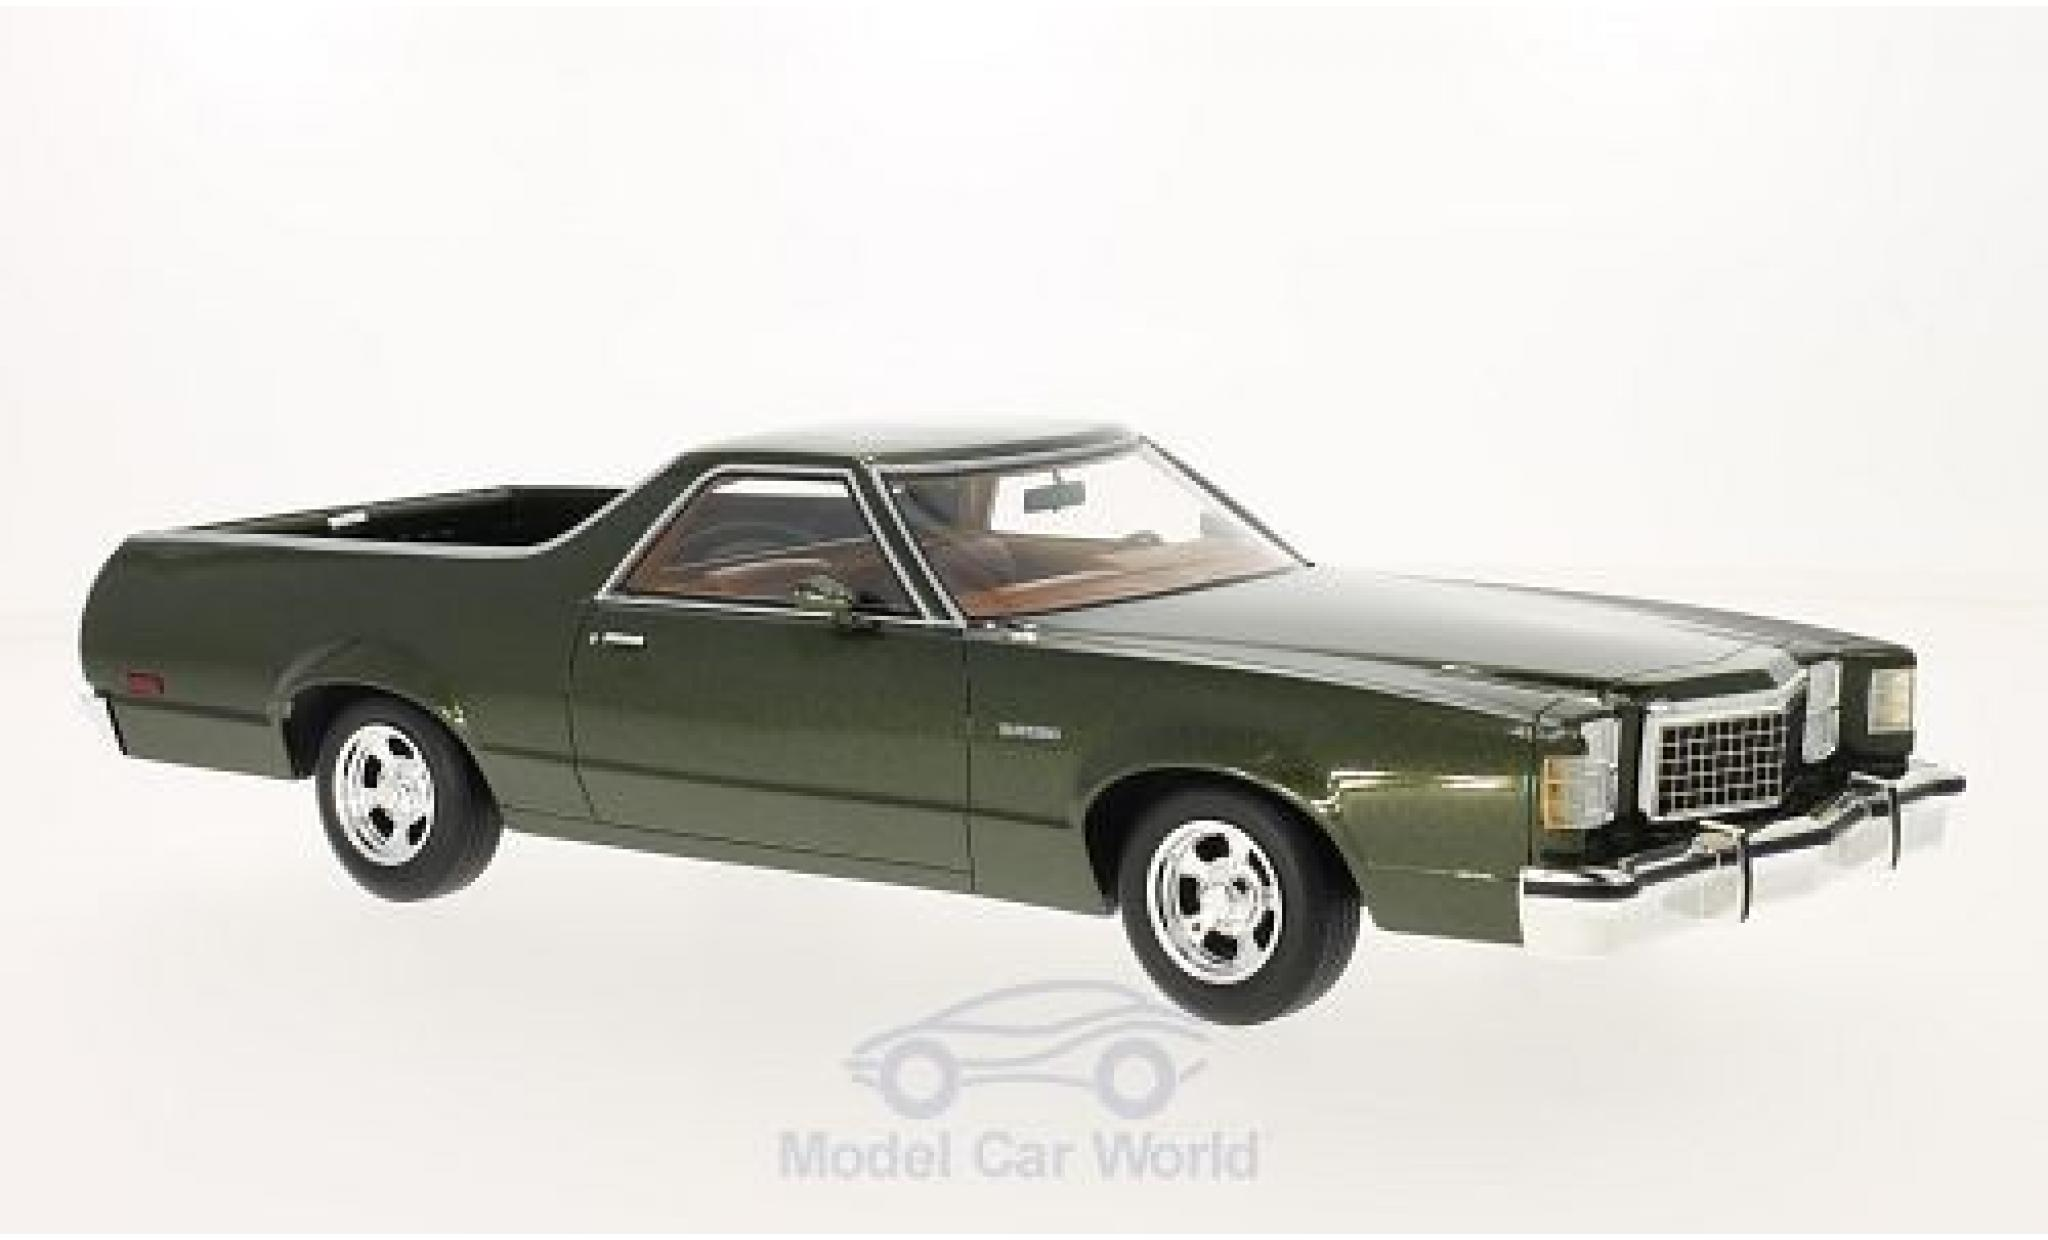 Ford Ranchero 1/18 BoS Models metallise verte 1979